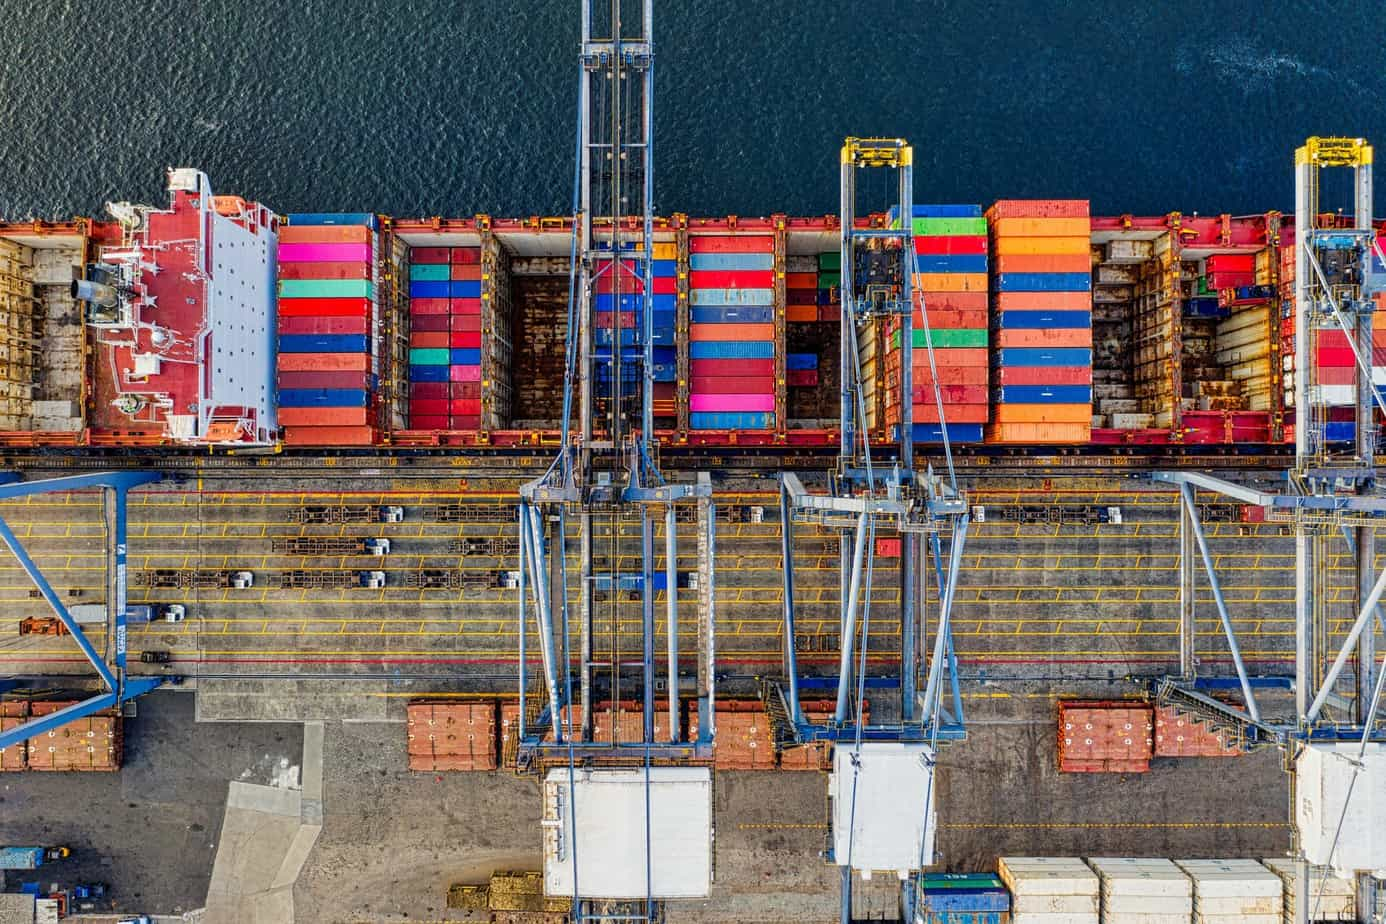 top view photography of cargo ship with intermodal containers